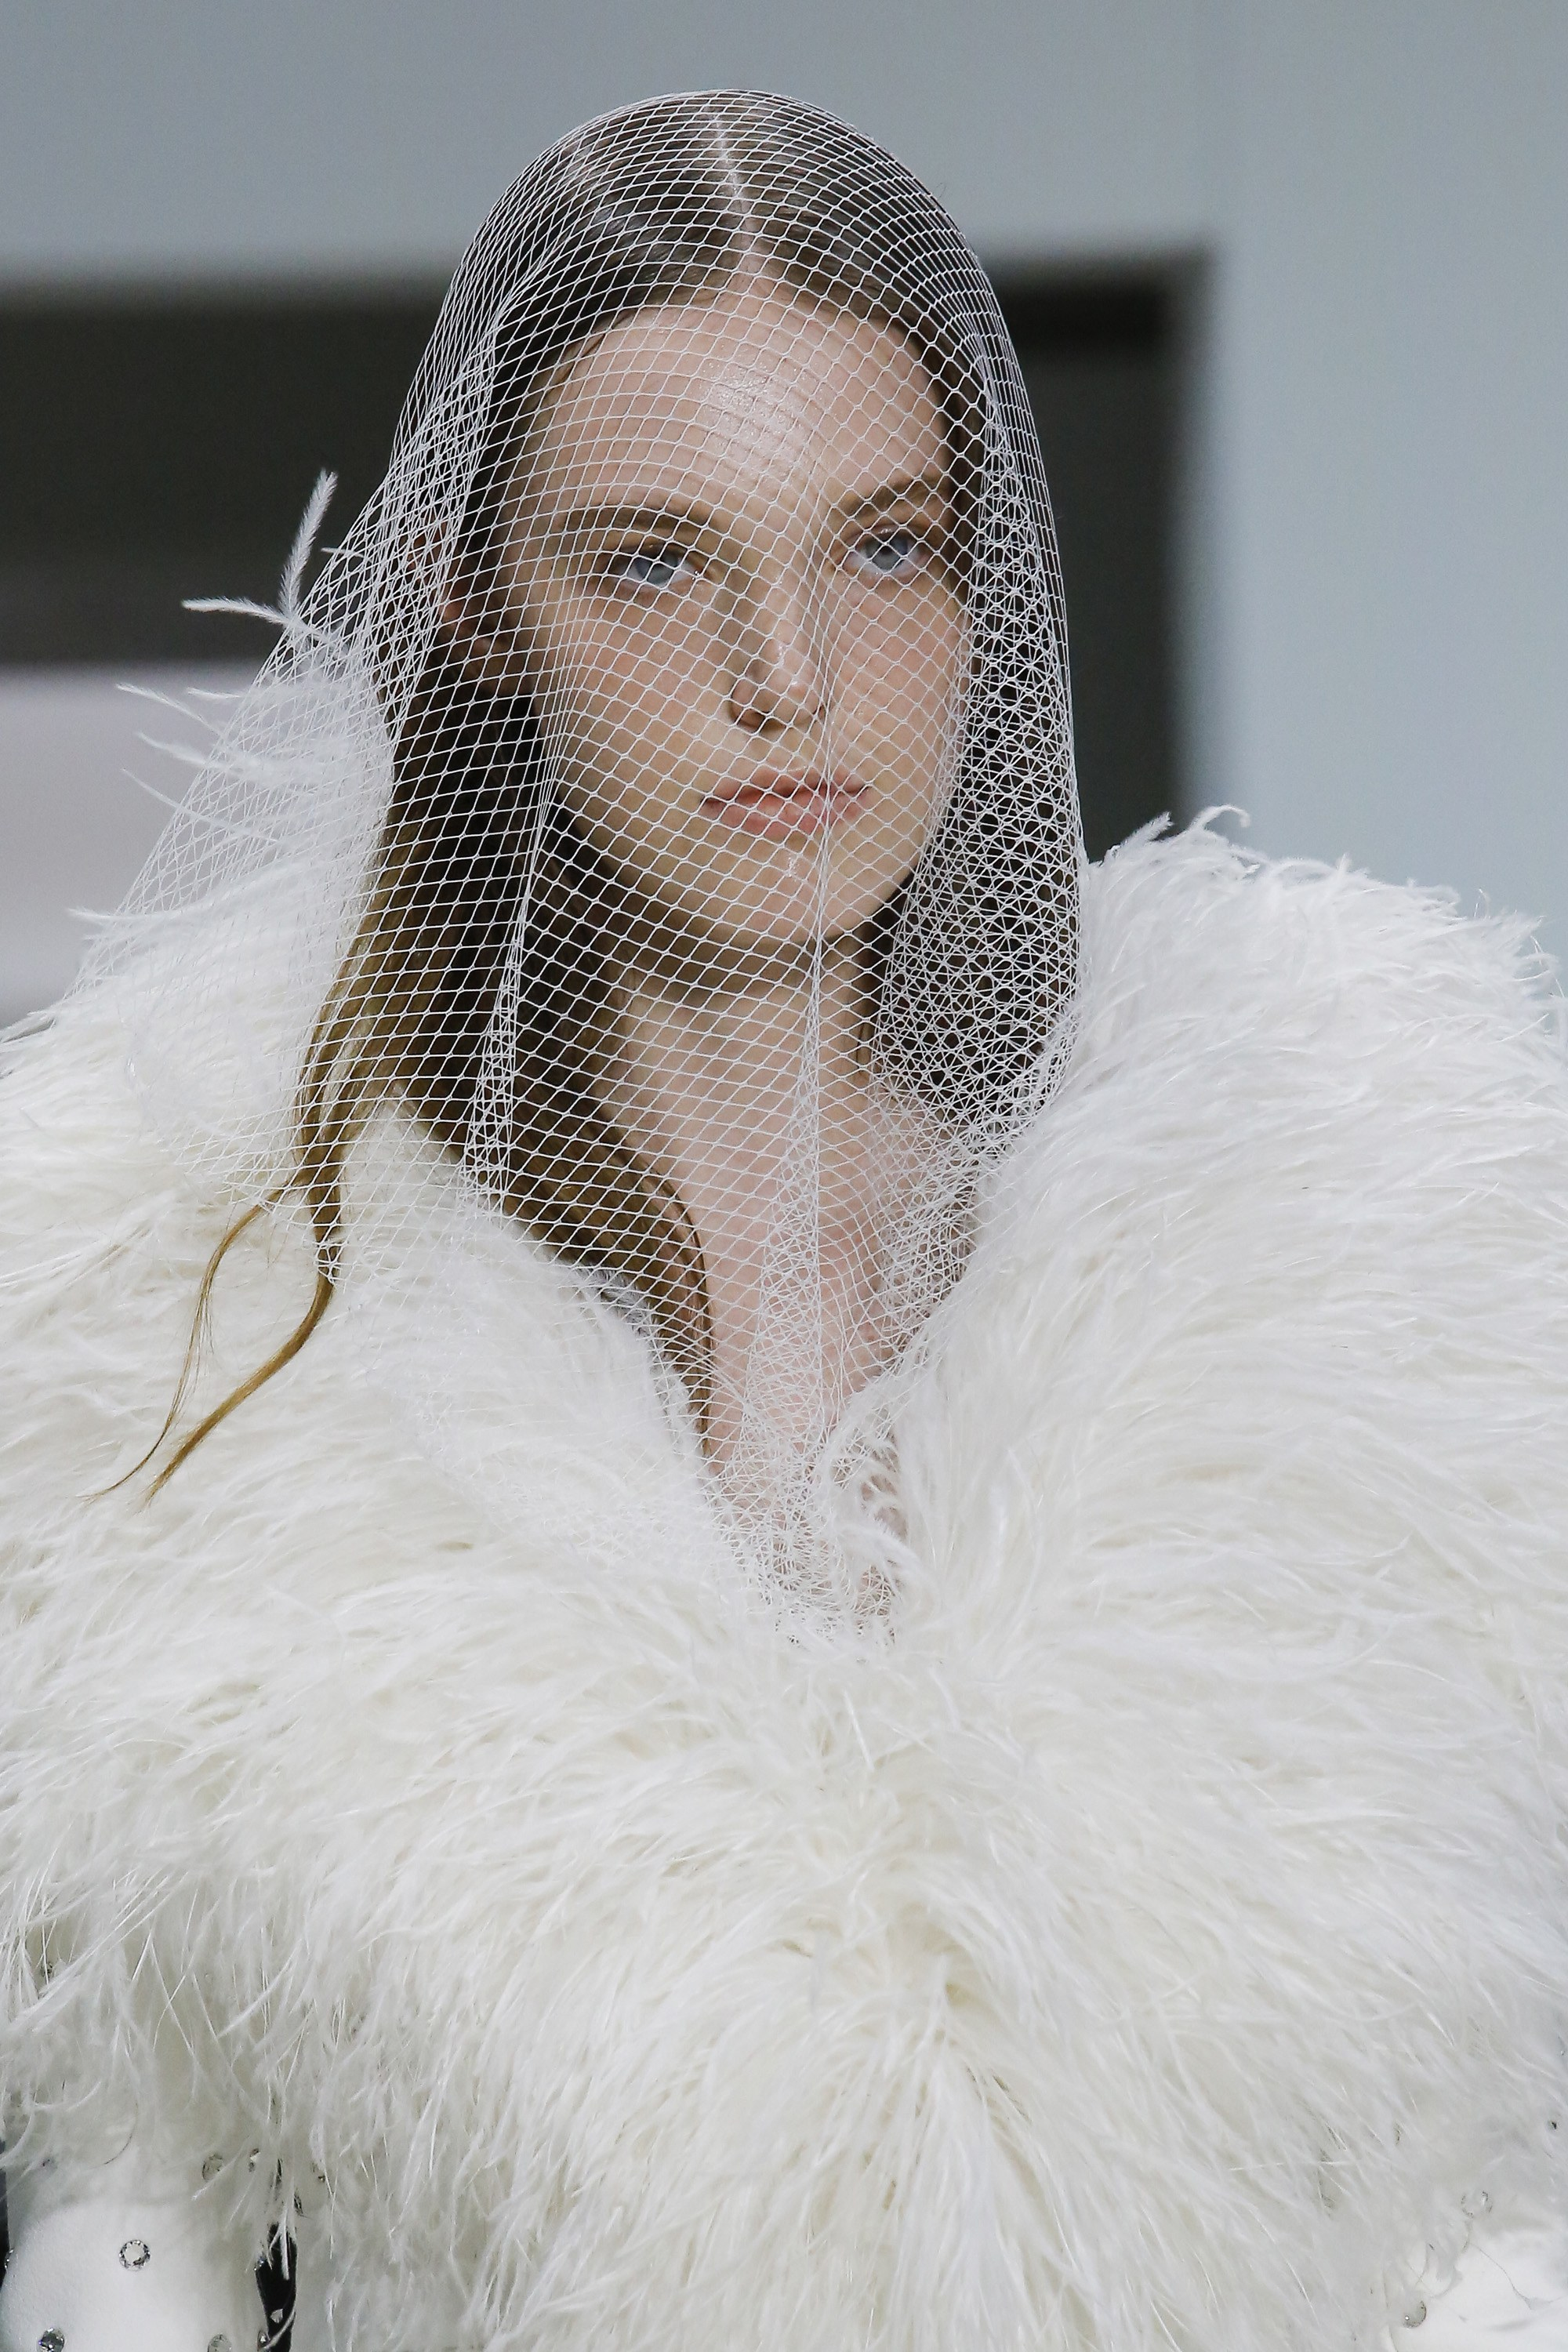 Giambattista Valli, Fall 2018, Couture, couture collections, Designer, fashion show, collection, Giambattista Valli Fall 2018 Couture, runway 2018 Religion, rock'n'roll and children of flowers in the Gucci Resort 2019 show Fashion Shows 01 06 RELIGION, ROCK'N'ROLL AND CHILDREN OF FLOWERS IN THE GUCCI RESORT 2019 SHOW The creative director of Italian fashion house Gucci, Alessandro Michele, has long trained guests and fans to eccentric shows and unobvious locations. This time... Legacy of the Aztecs: a new Louis Vuitton 2019 Cruise Collection Fashion Shows 30 05 LEGACY OF THE AZTECS: A NEW LOUIS VUITTON 2019 CRUISE COLLECTION Nicolas Ghesquière's eloquent posts on Twitter, accompanied by the hashtag #notgoinganywhere, hinting at the designer's certain dissatisfaction with the current...